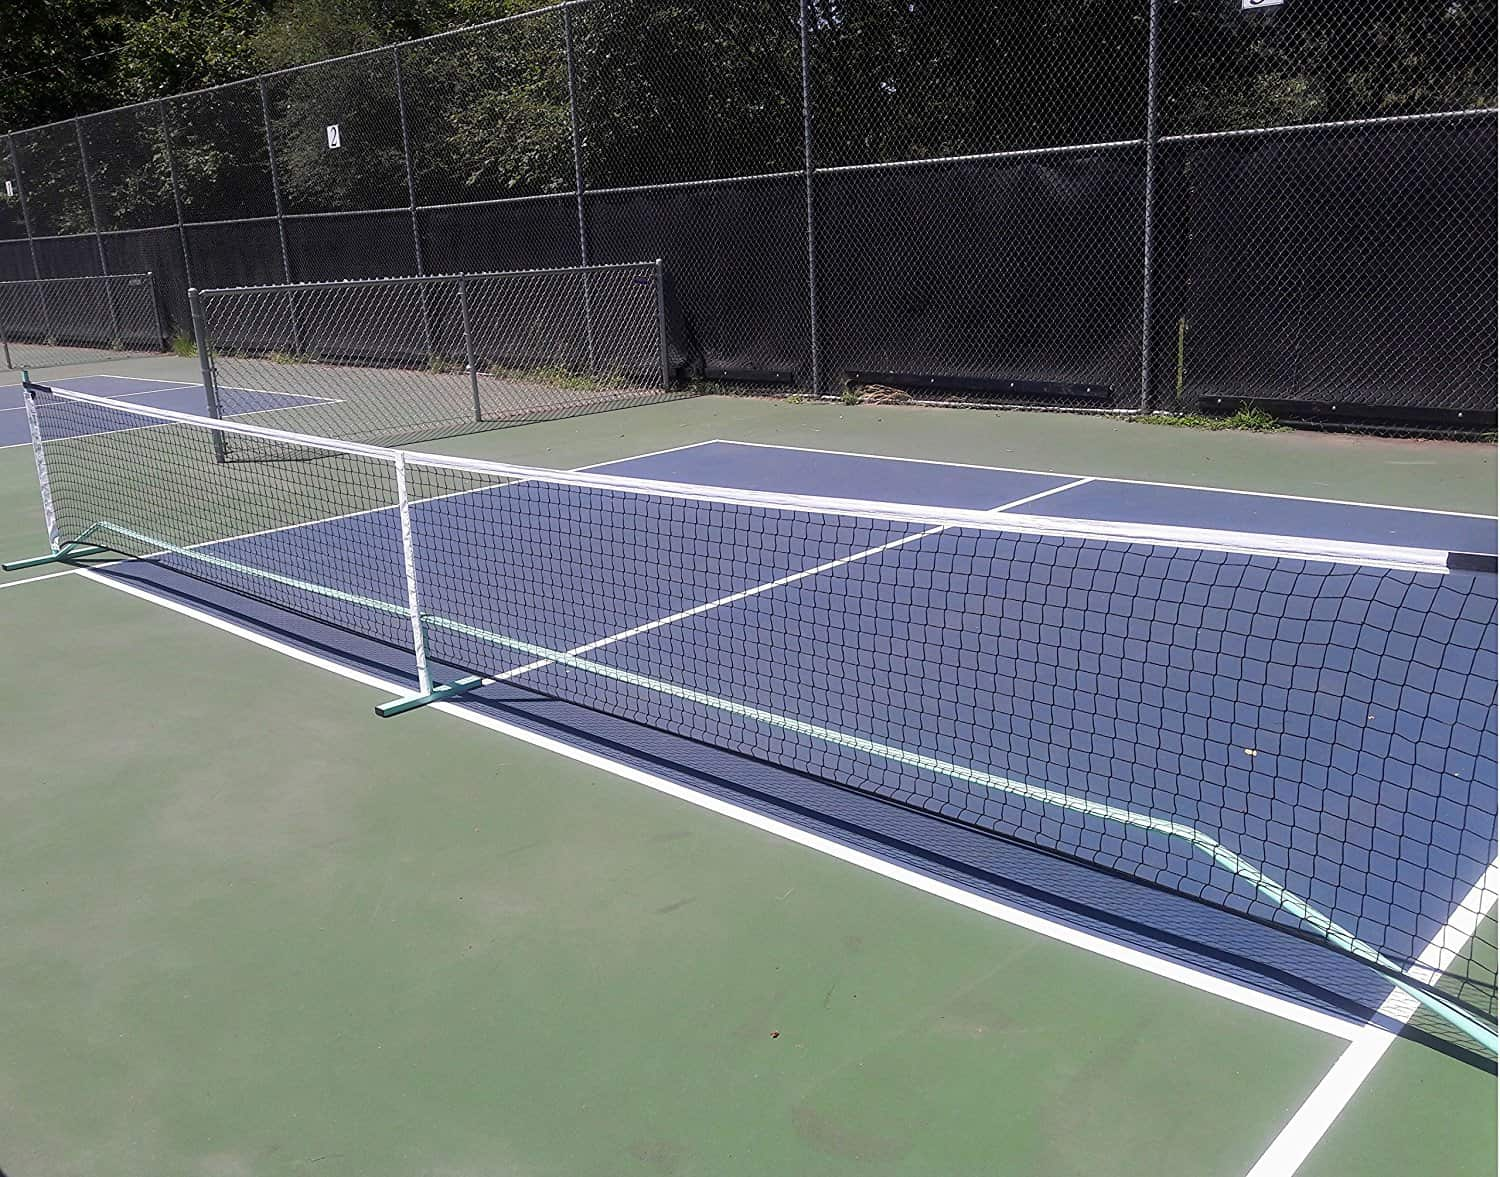 How long is a pickleball net?